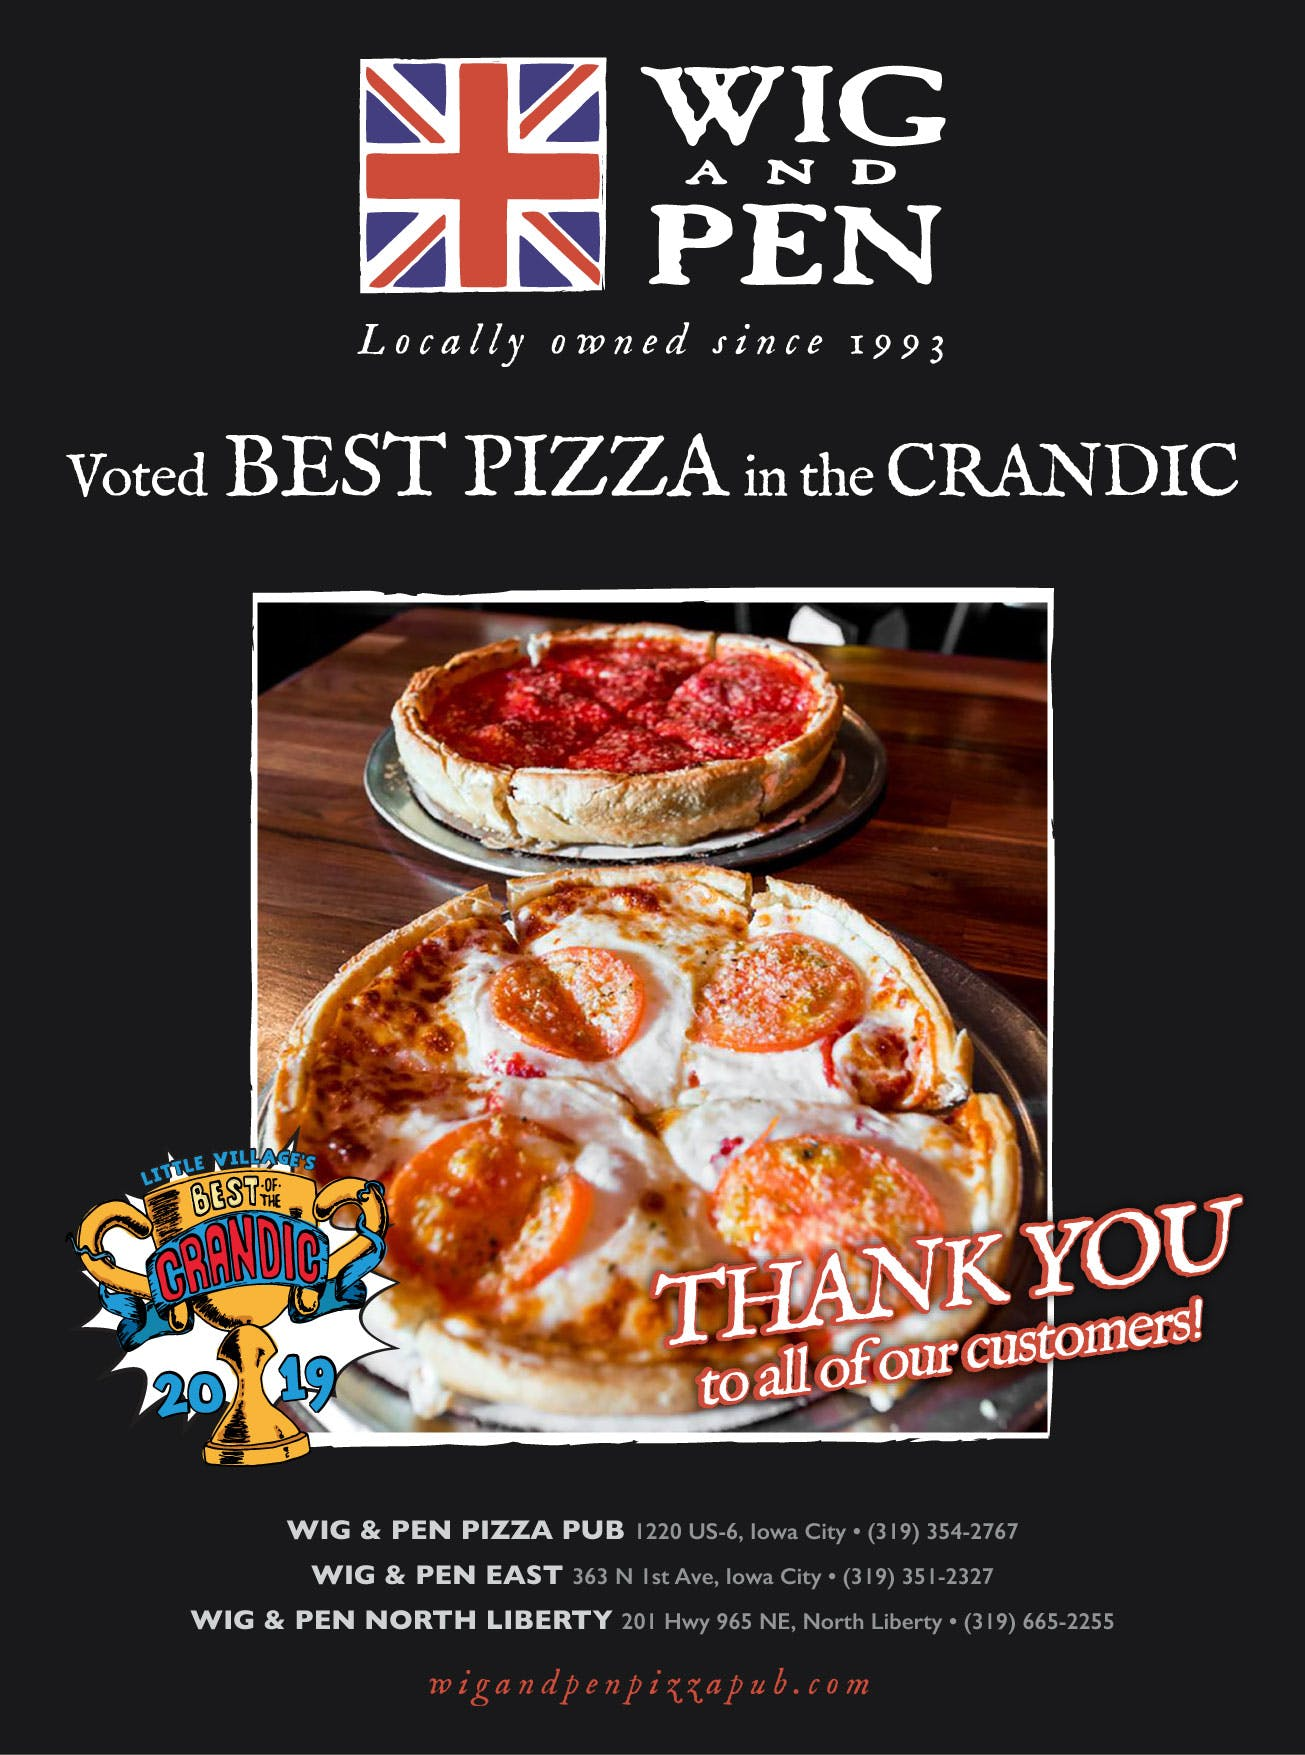 Winner of Best Pizza in the Crandic 2019